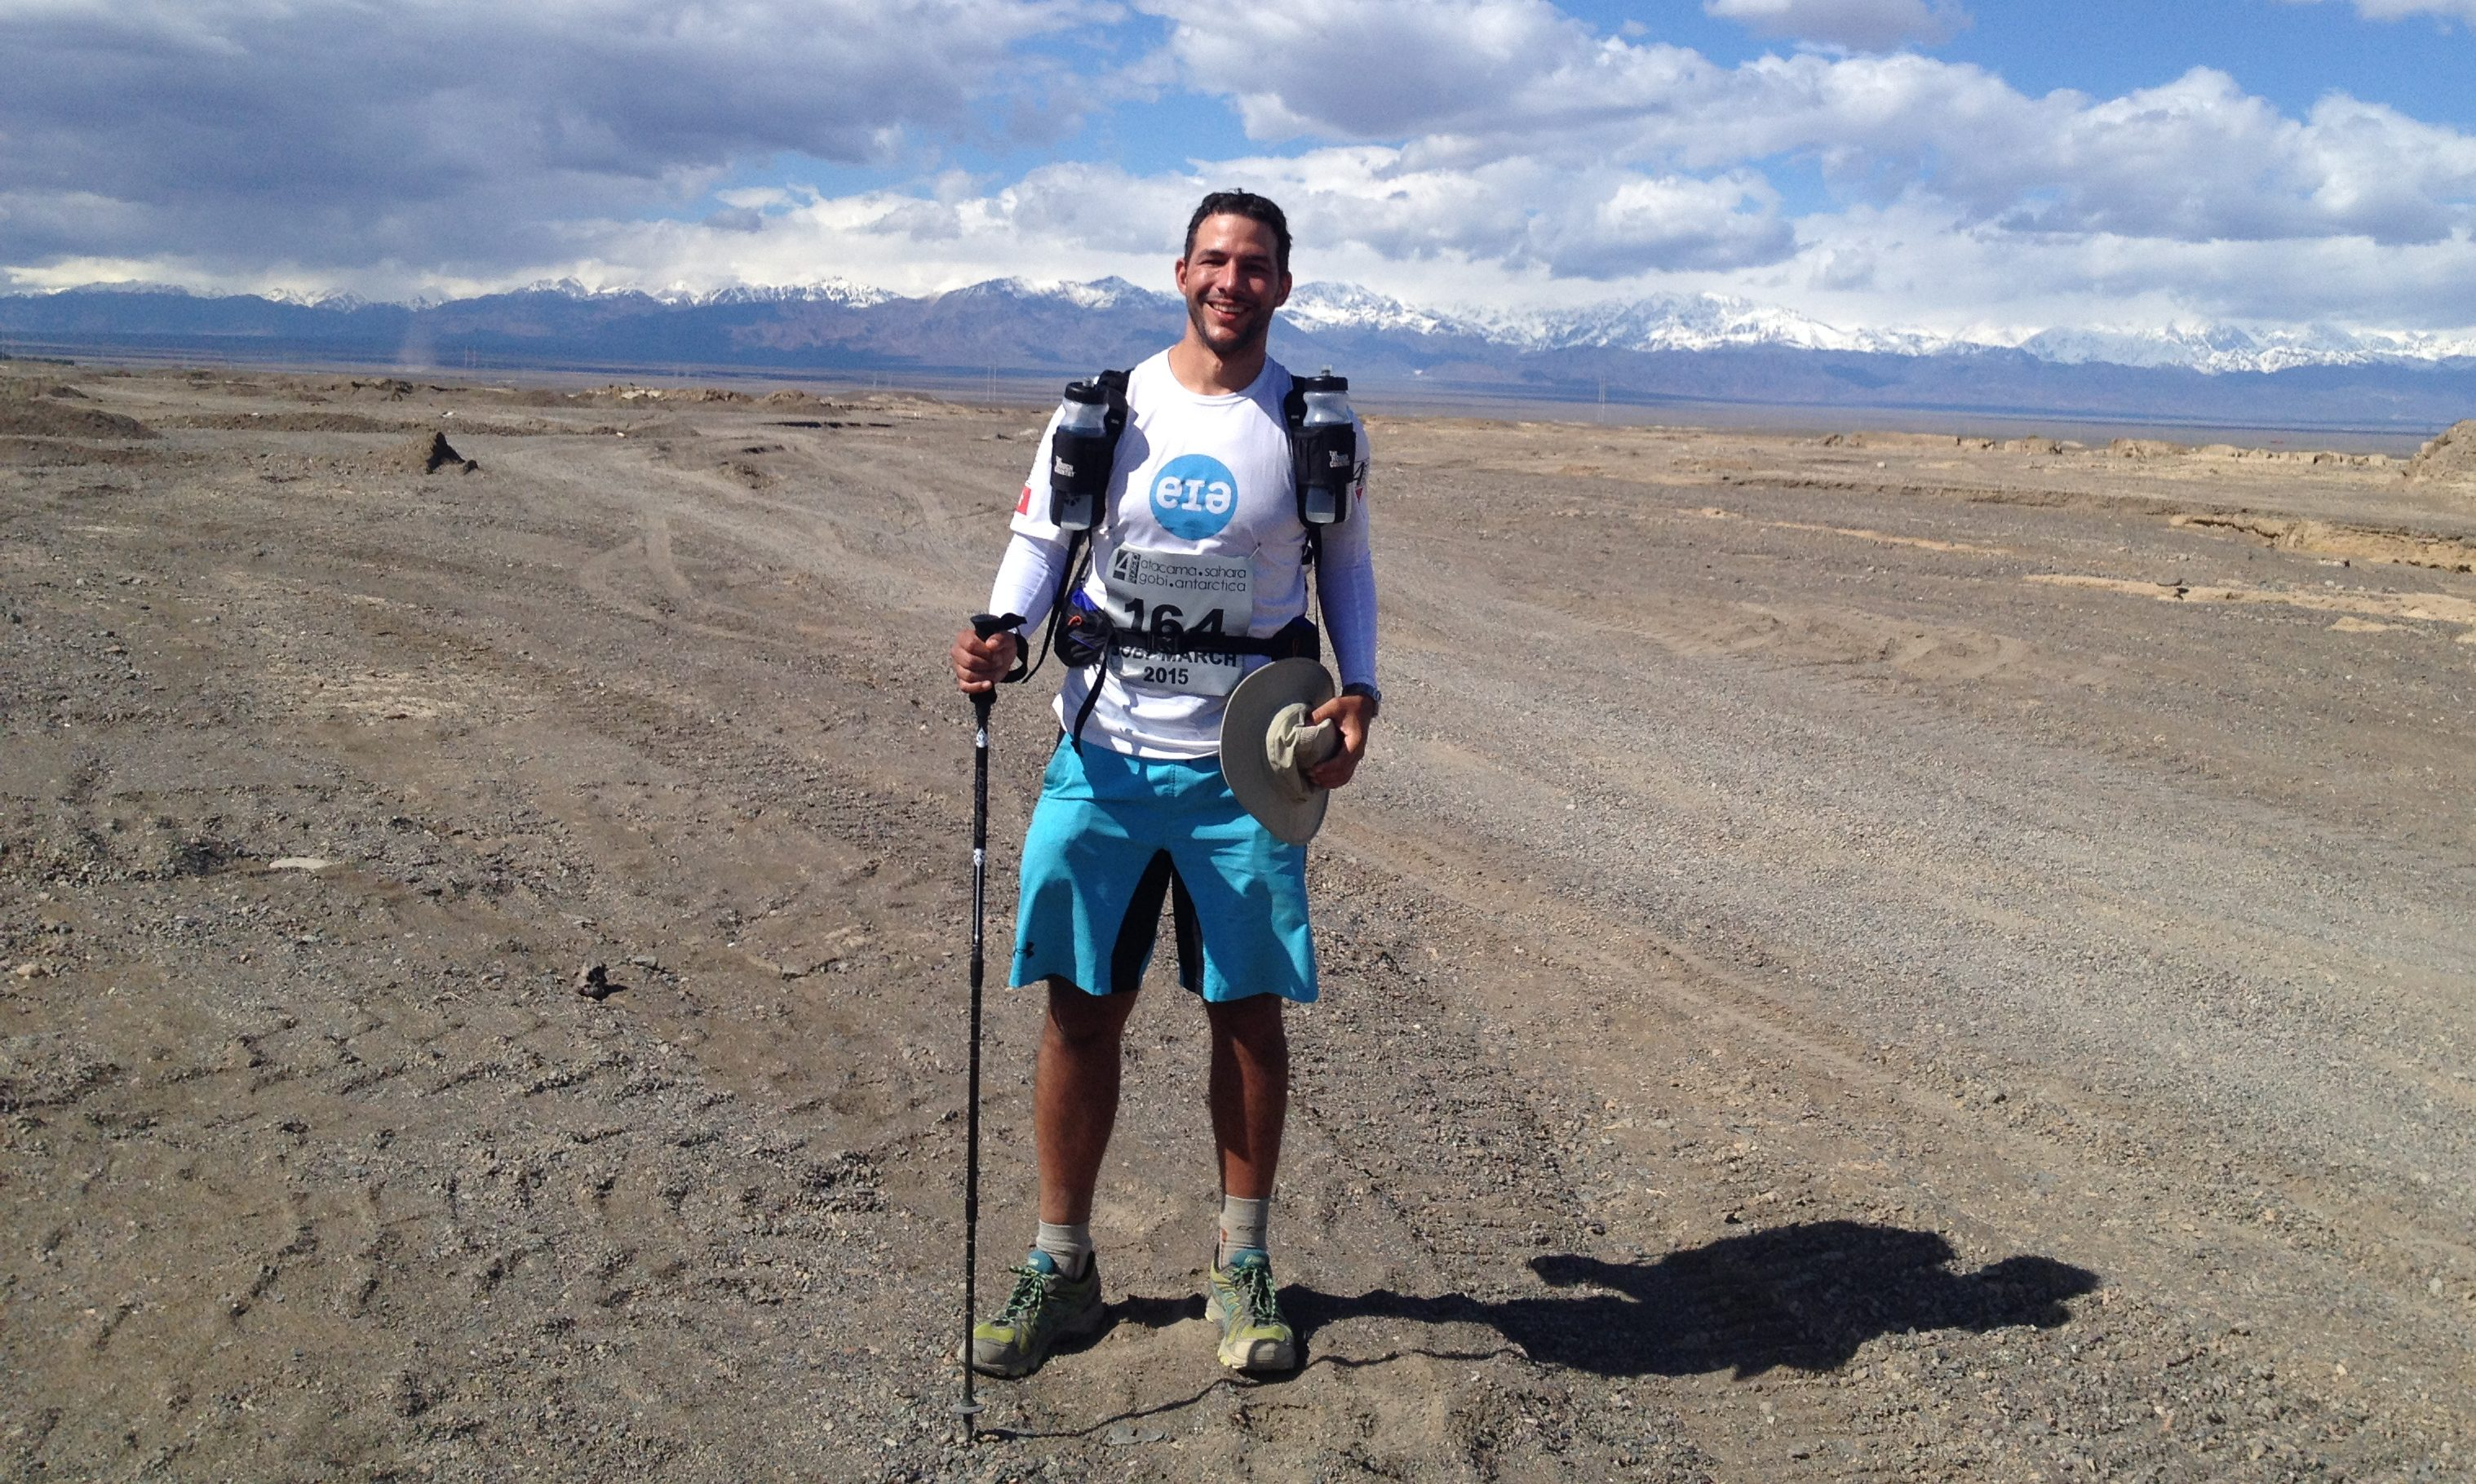 This is Nico Zurcher who took on the Gobi March for EIA in 2015.